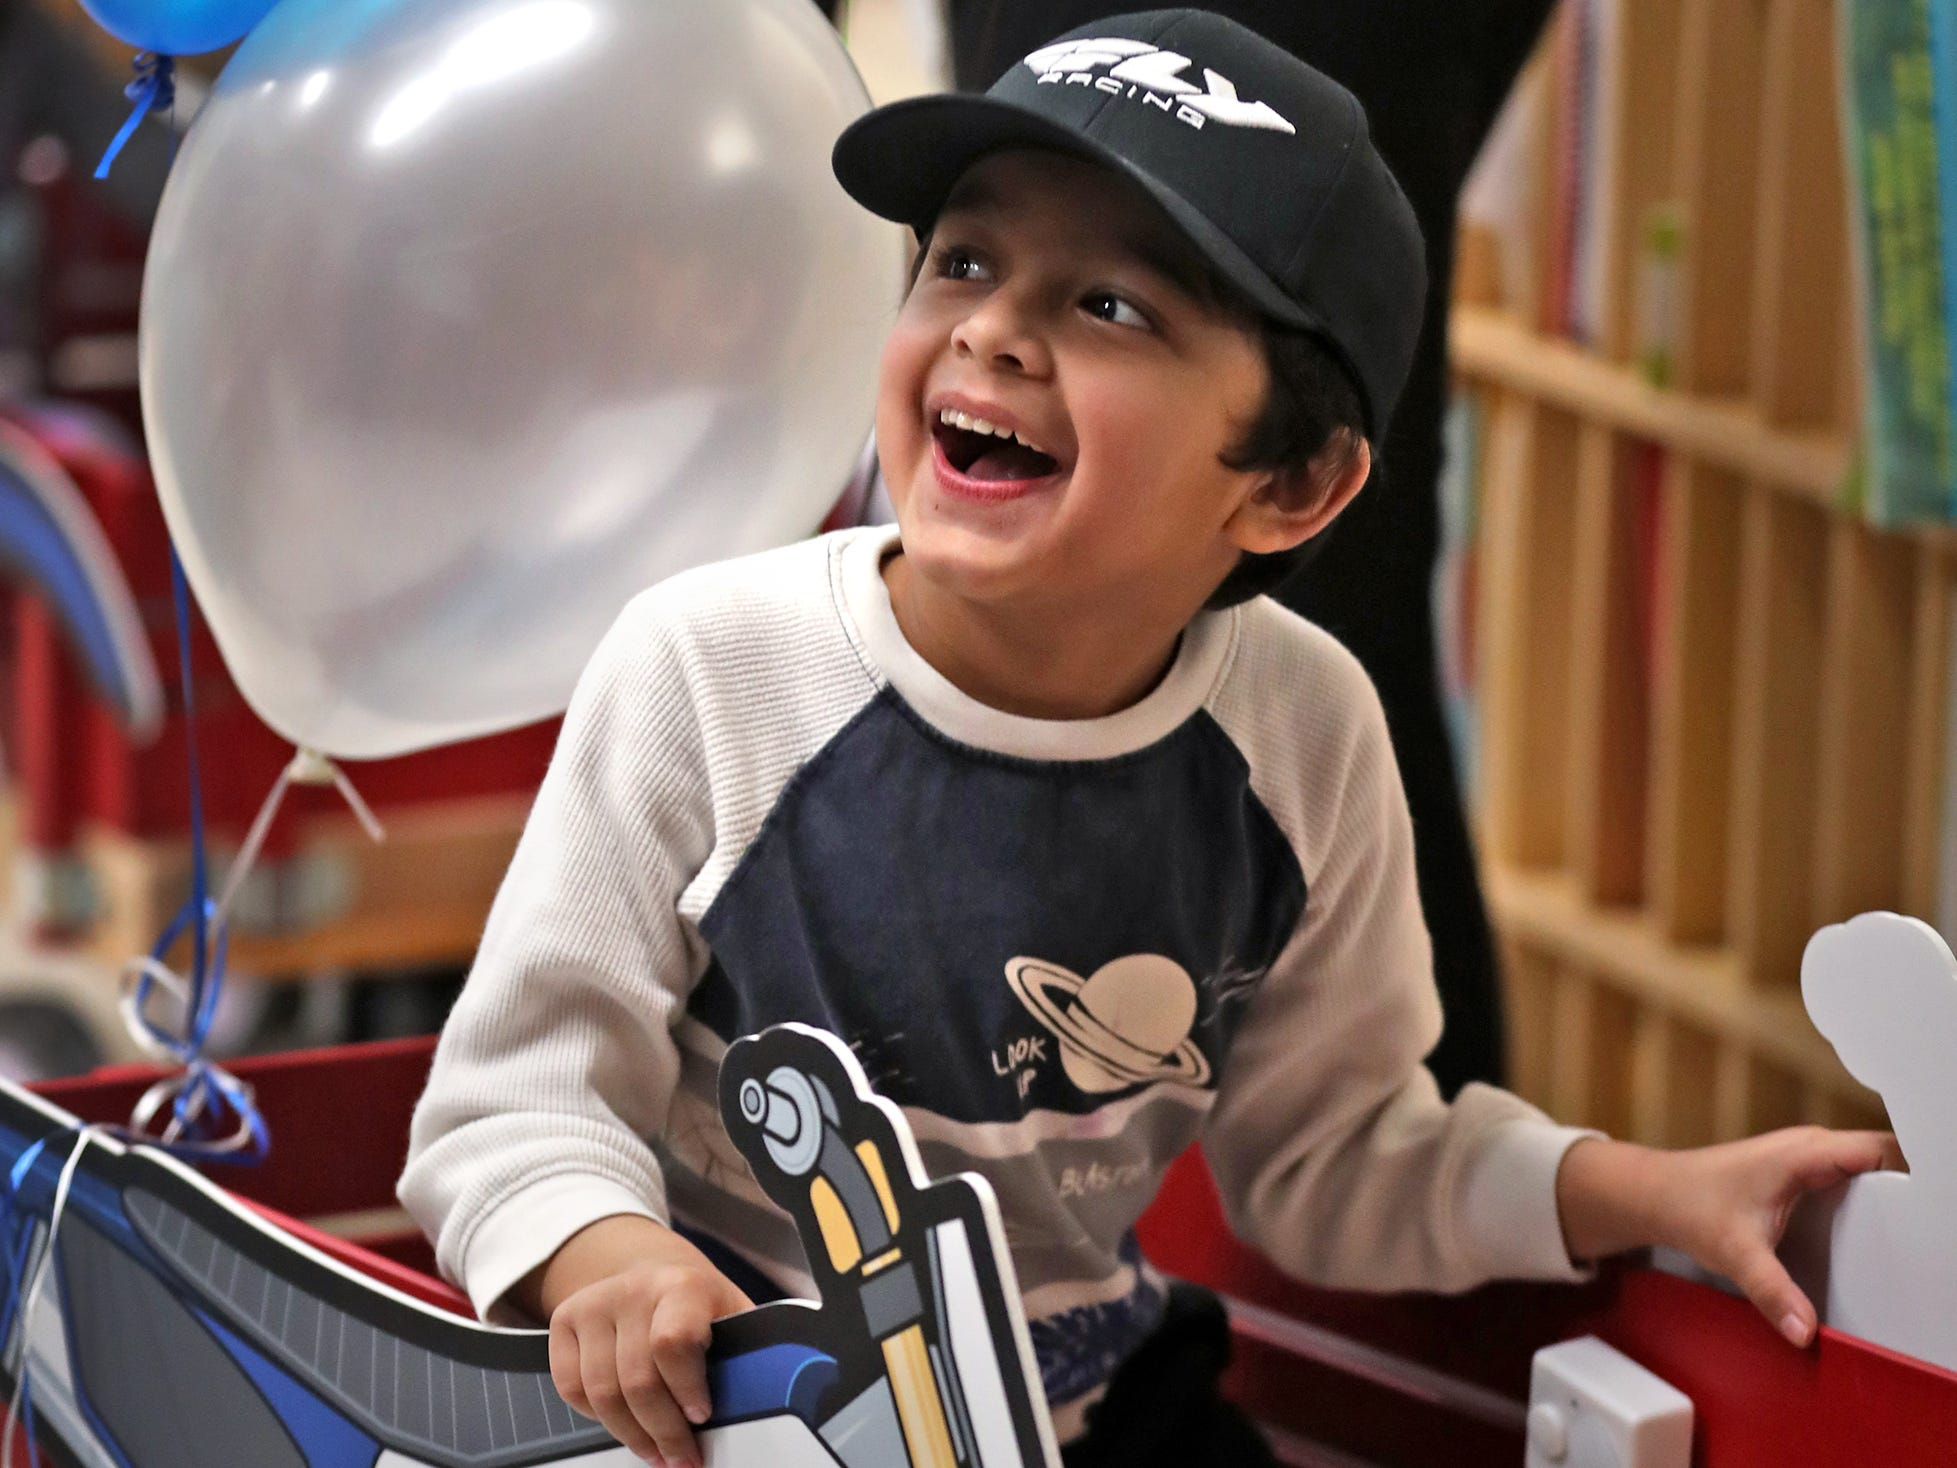 Abhiraj Singh laughs while getting a wagon ride from Supercross racer Mike Alessi visiting with kids at Day Early Learning Center, Thursday, March 14, 2019.  Alessi provided Supercross rider jerseys and hats for the kids and gave wagon rides, on a break before the upcoming Supercross race.